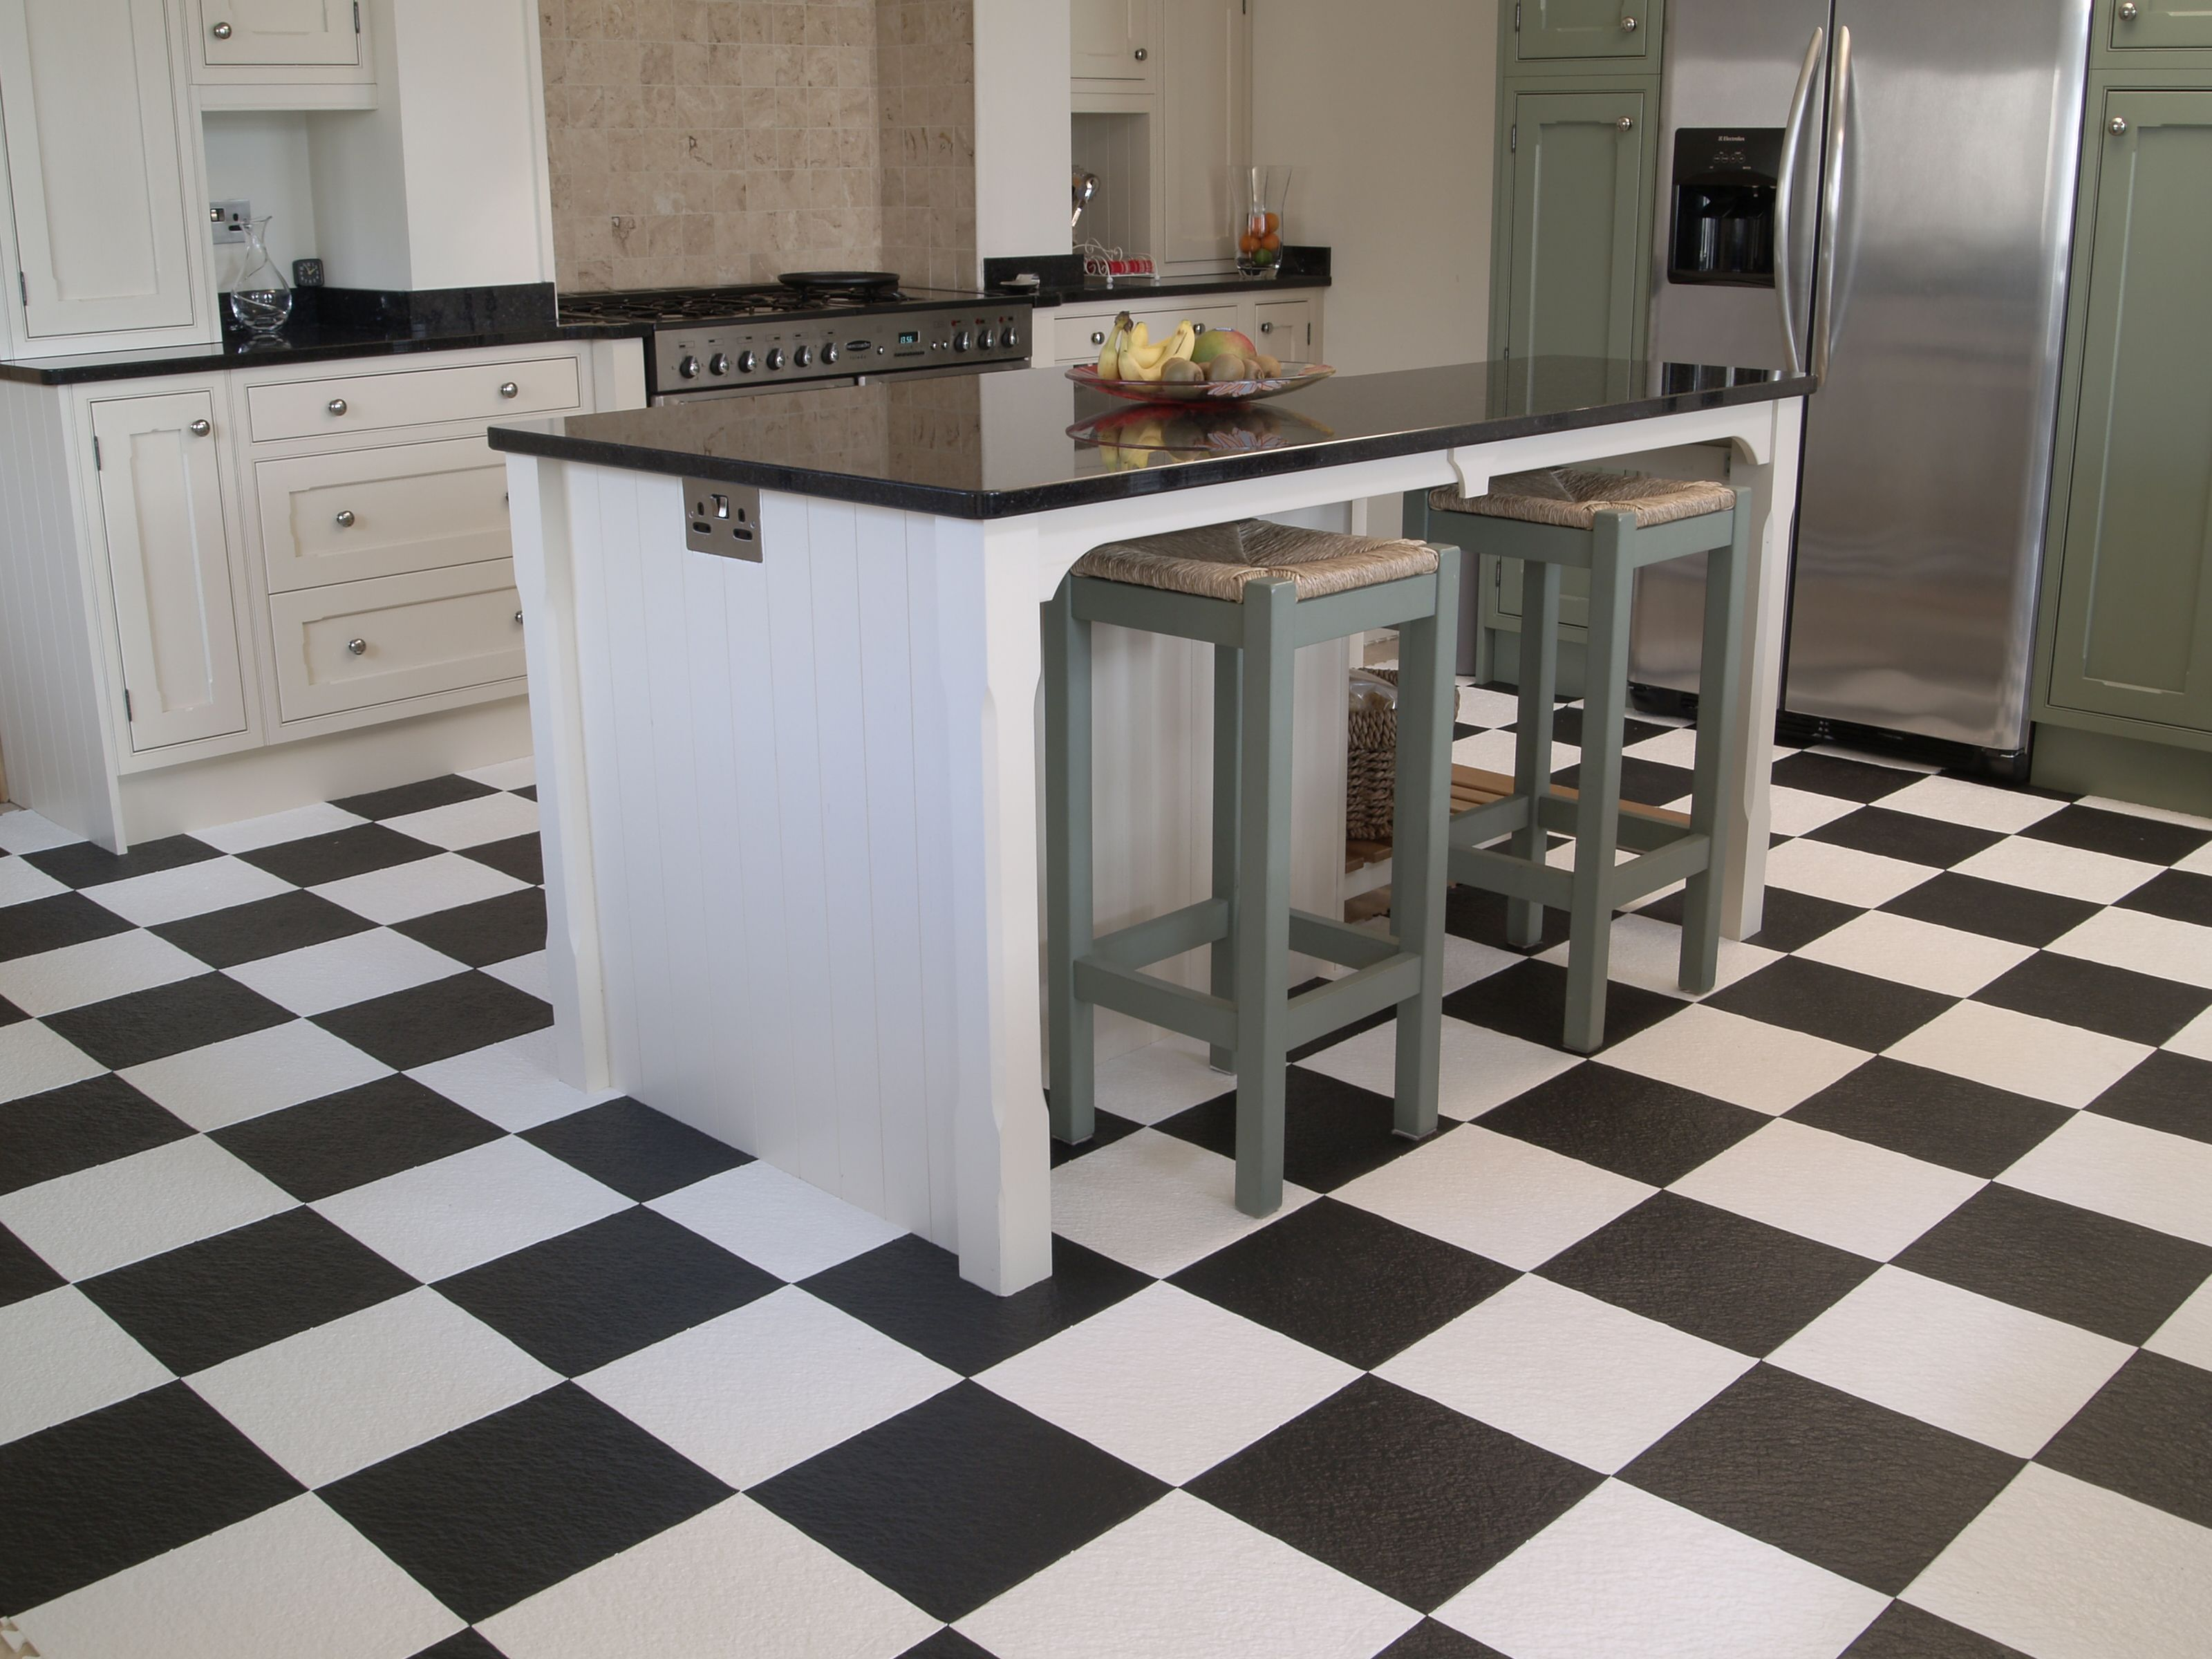 Pvc vloer flexi tiles pvc flooring pvc vloeren pinterest slate flex tiles offer an upscale pvc floor tile that can be used in garages as well as in areas where a more decorative floor surface is desired dailygadgetfo Images